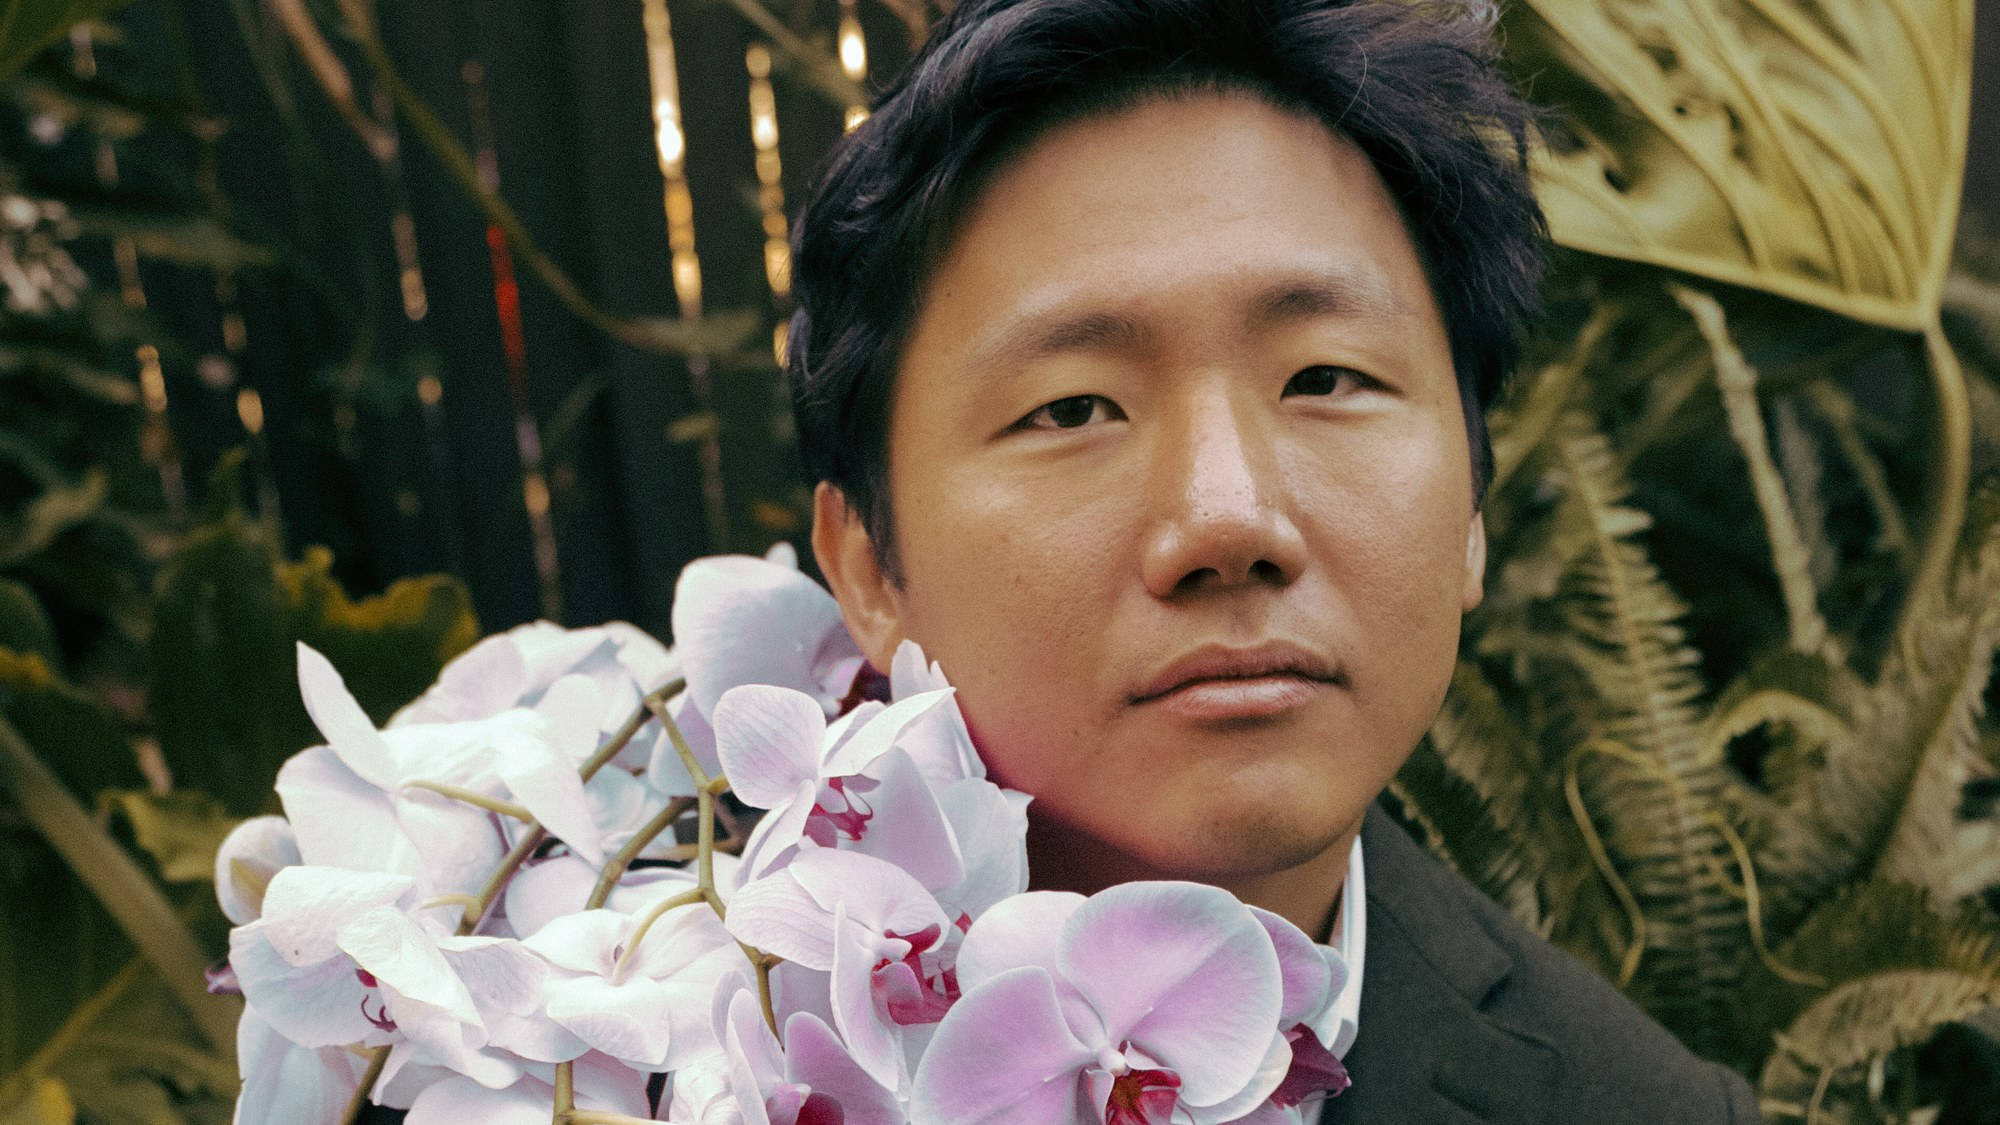 Director Hiro Murai (This is America/Atlanta)